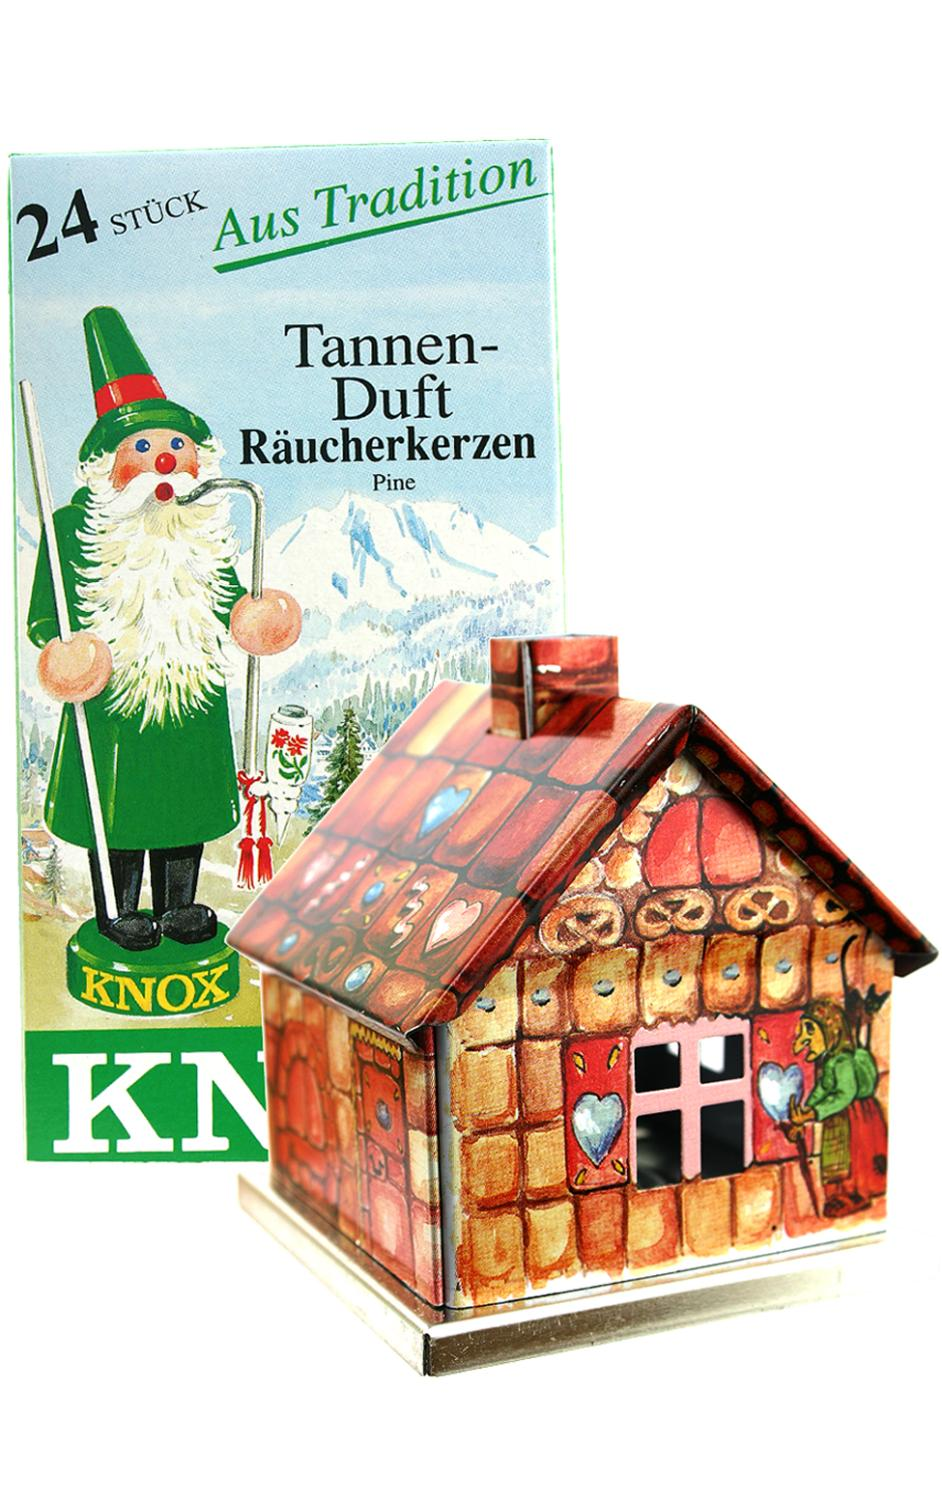 078510G - Knox Metal Incense House - Gingerbread motif - 5